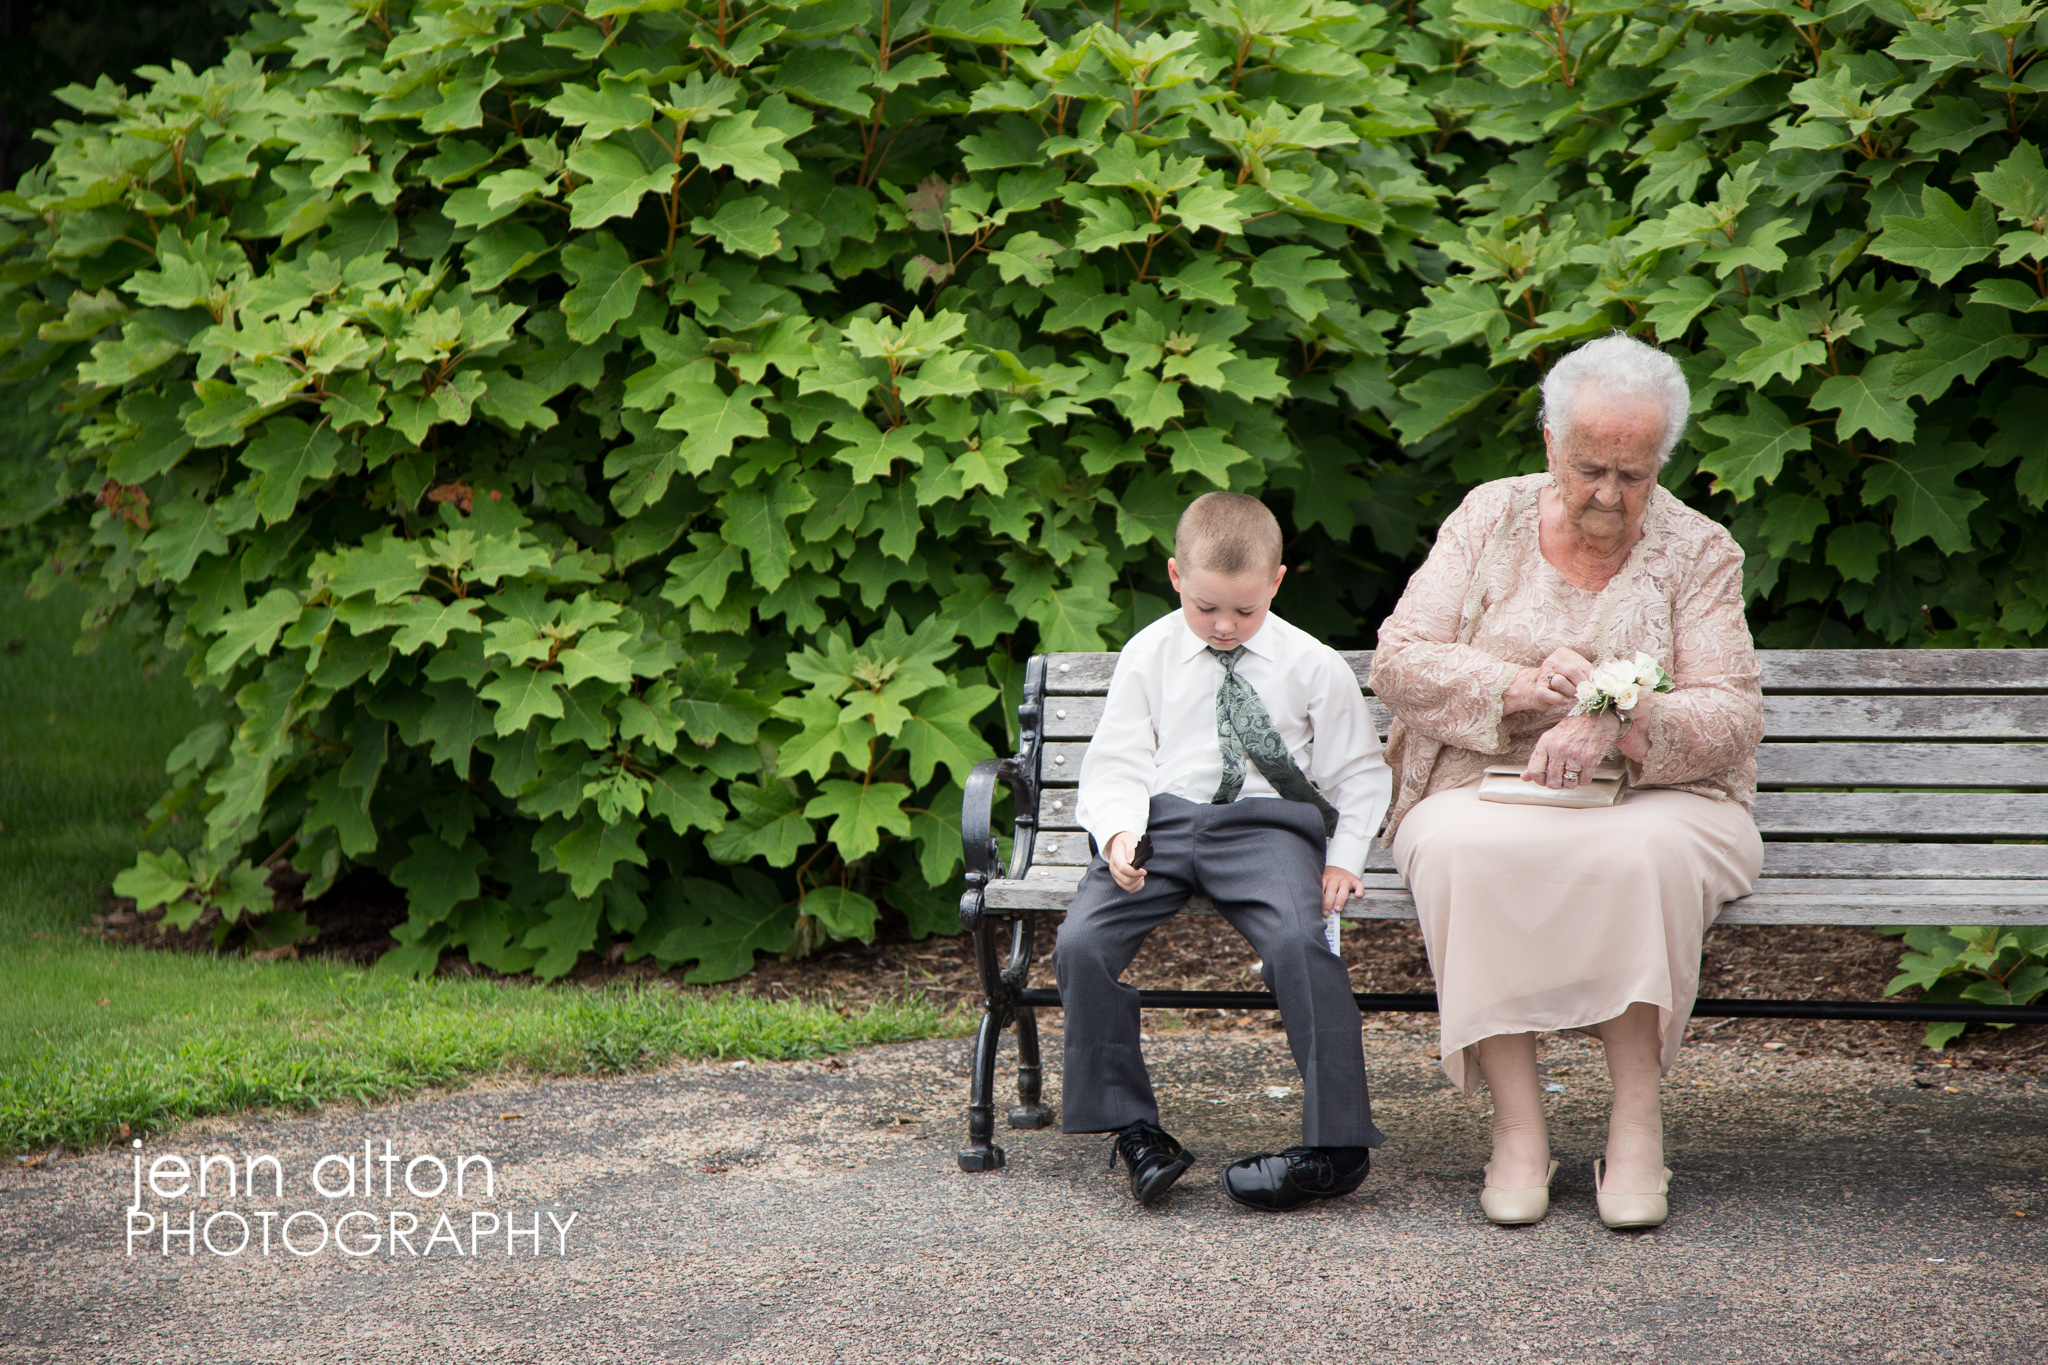 Candid family photo, grandmother and nephew on bench